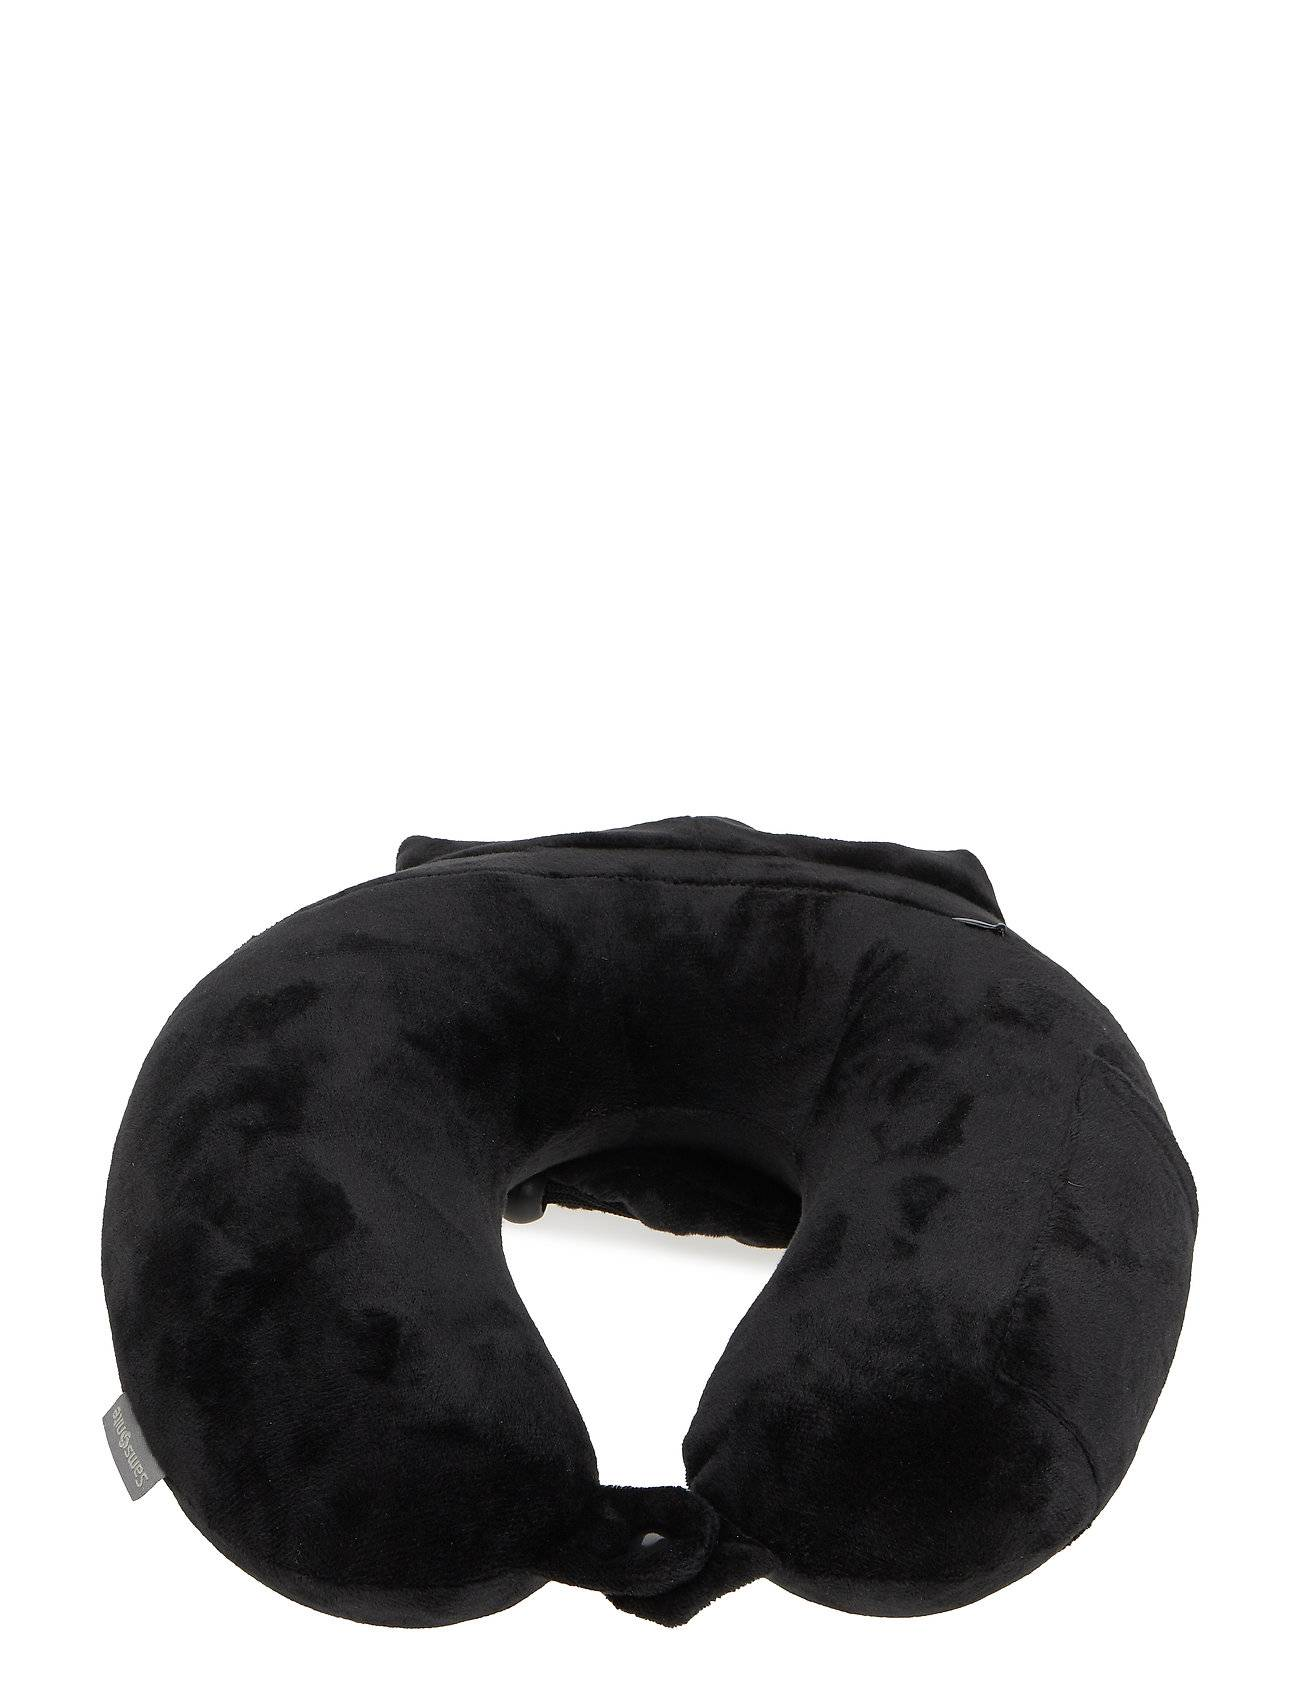 Samsonite Memory Foam Pillow With Pouch